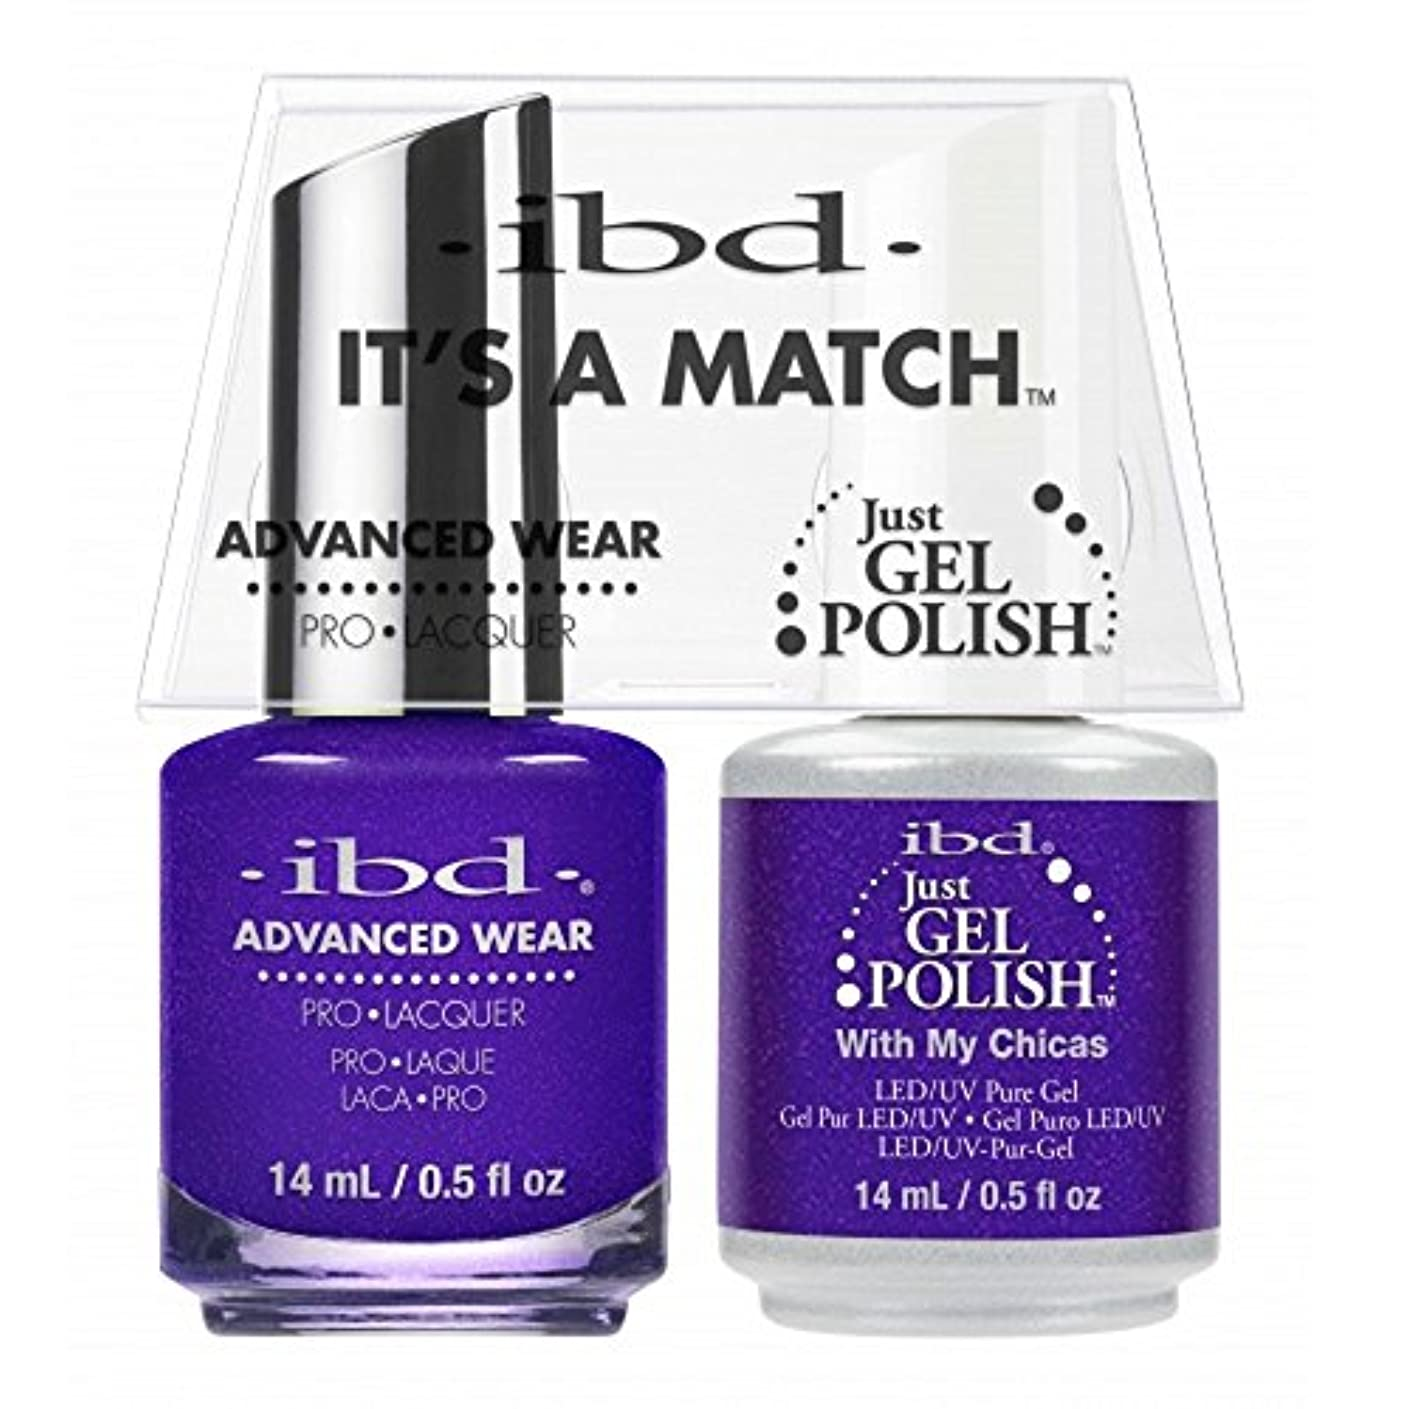 ibd - It's A Match -Duo Pack- Love Lola Collection - With My Chicas - 14 mL / 0.5 oz Each